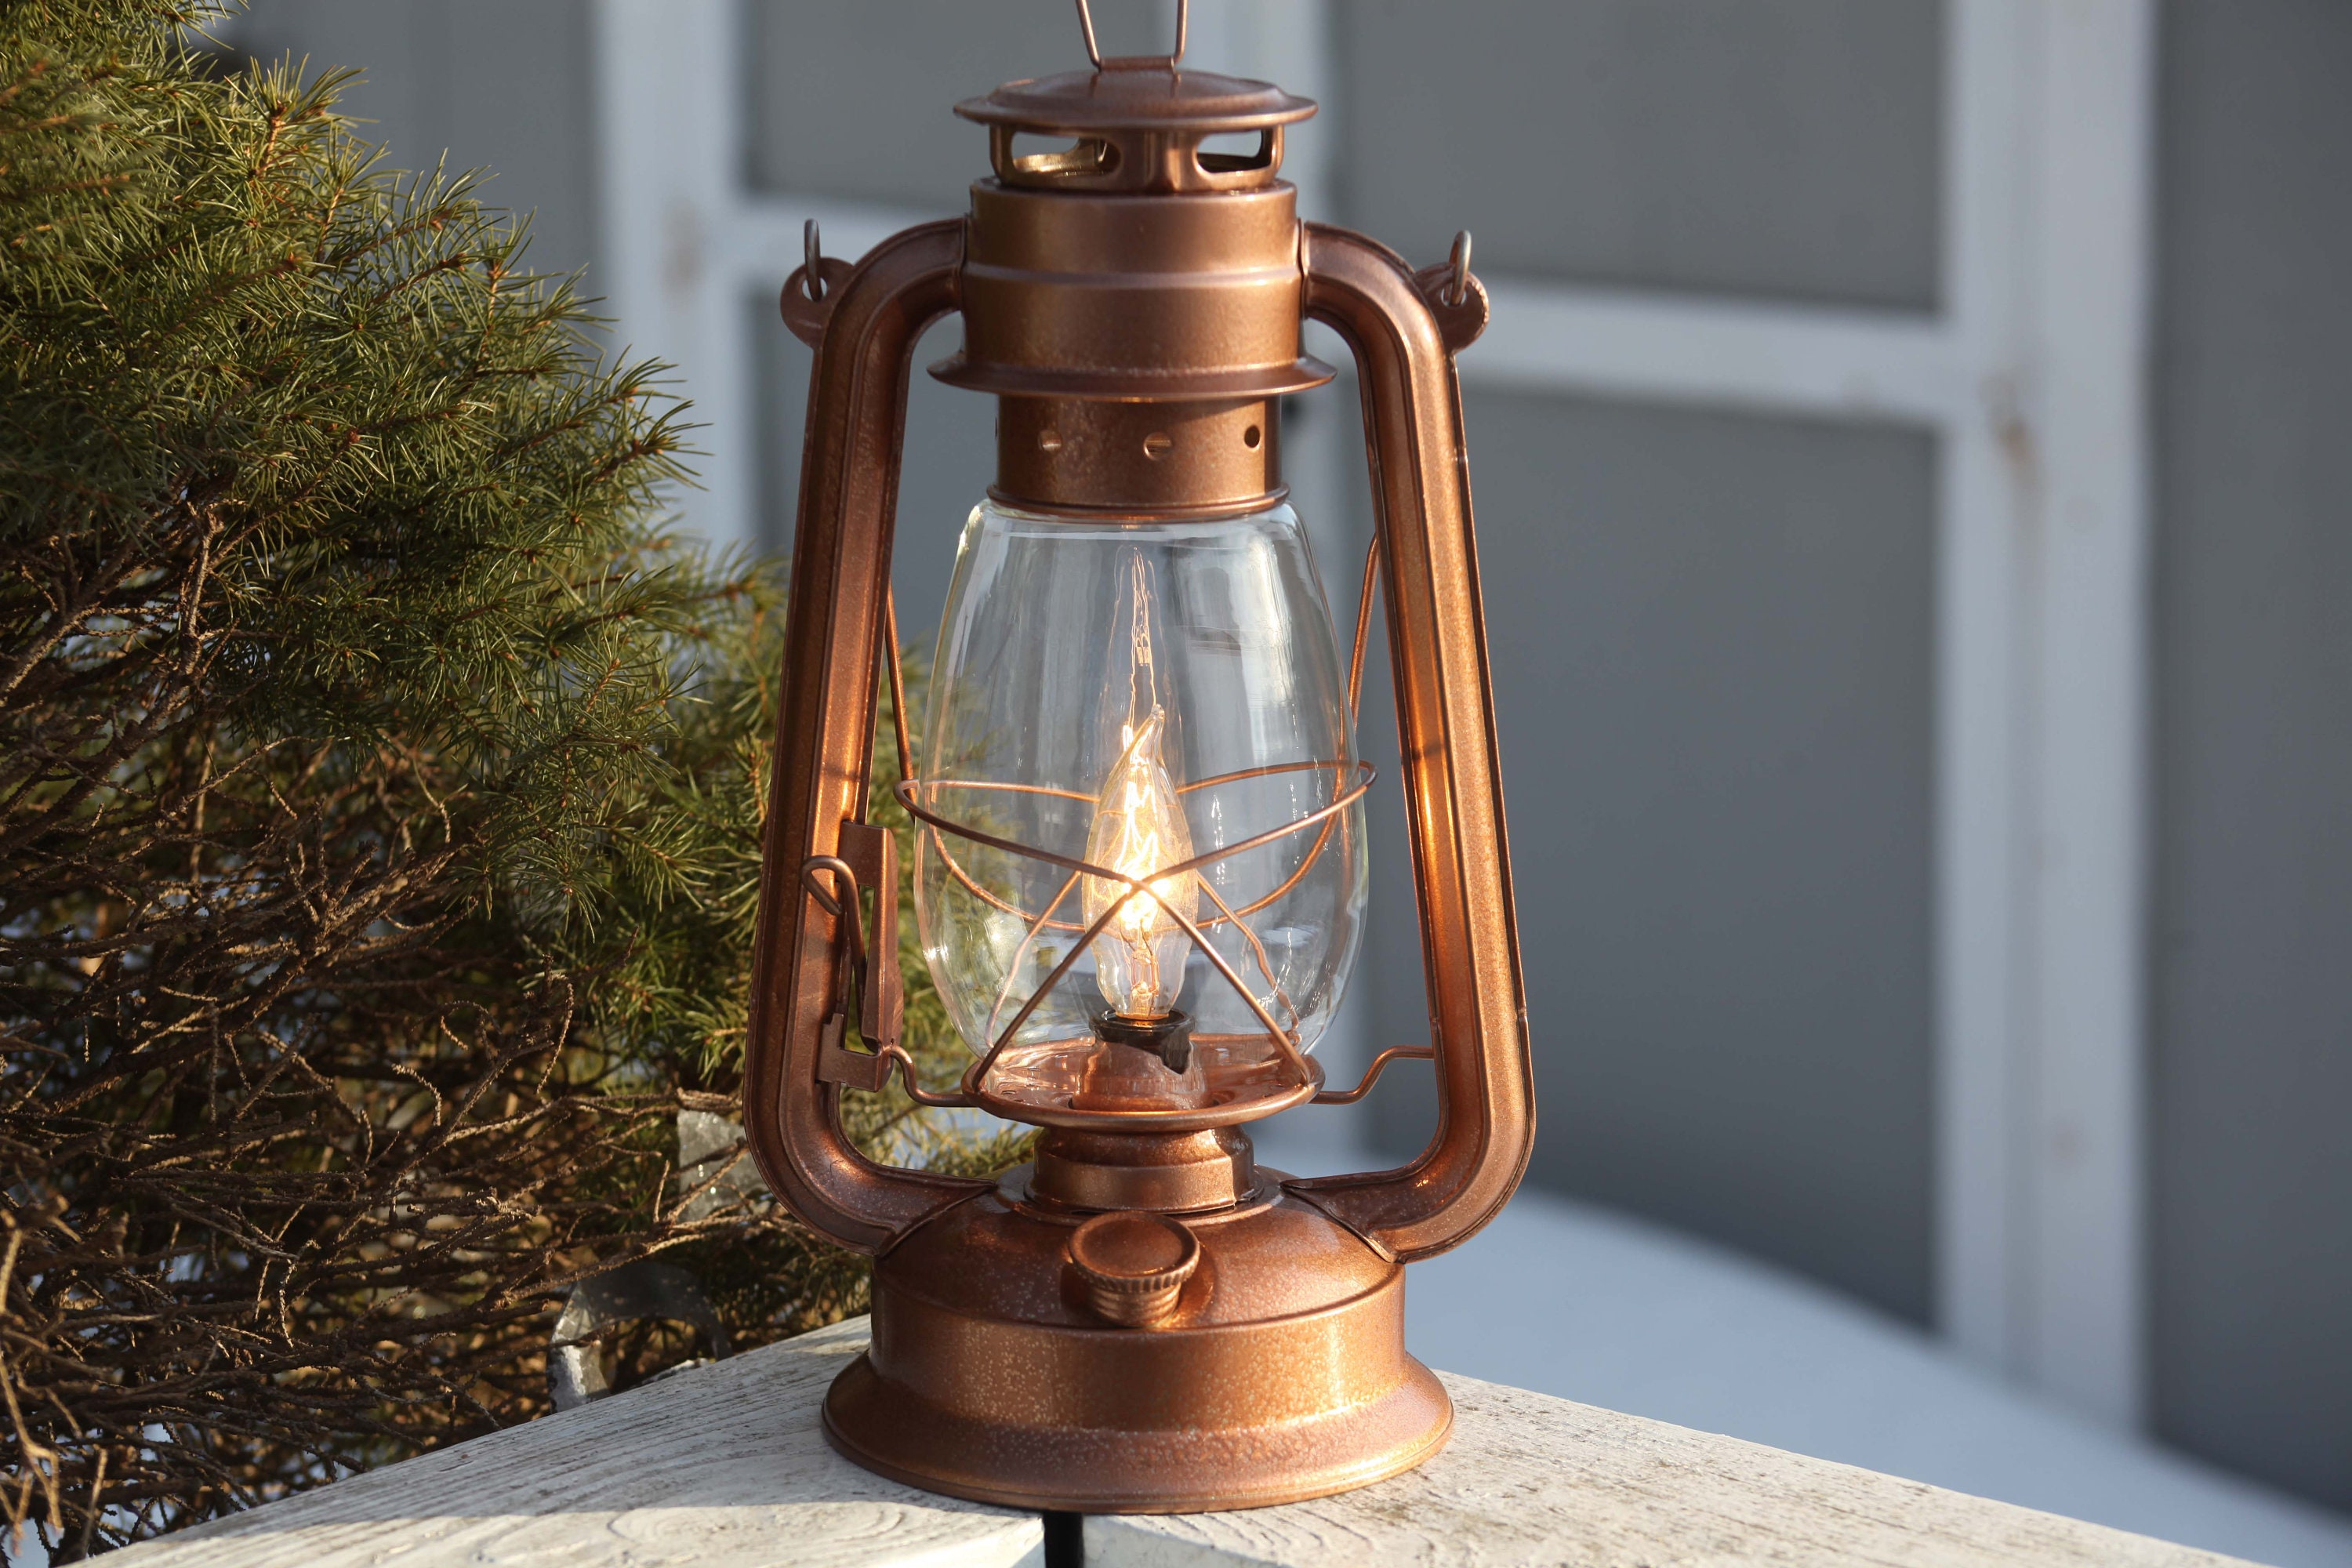 Electric Lantern Table Lamp Copper Lantern Dimmer Switch Etsy